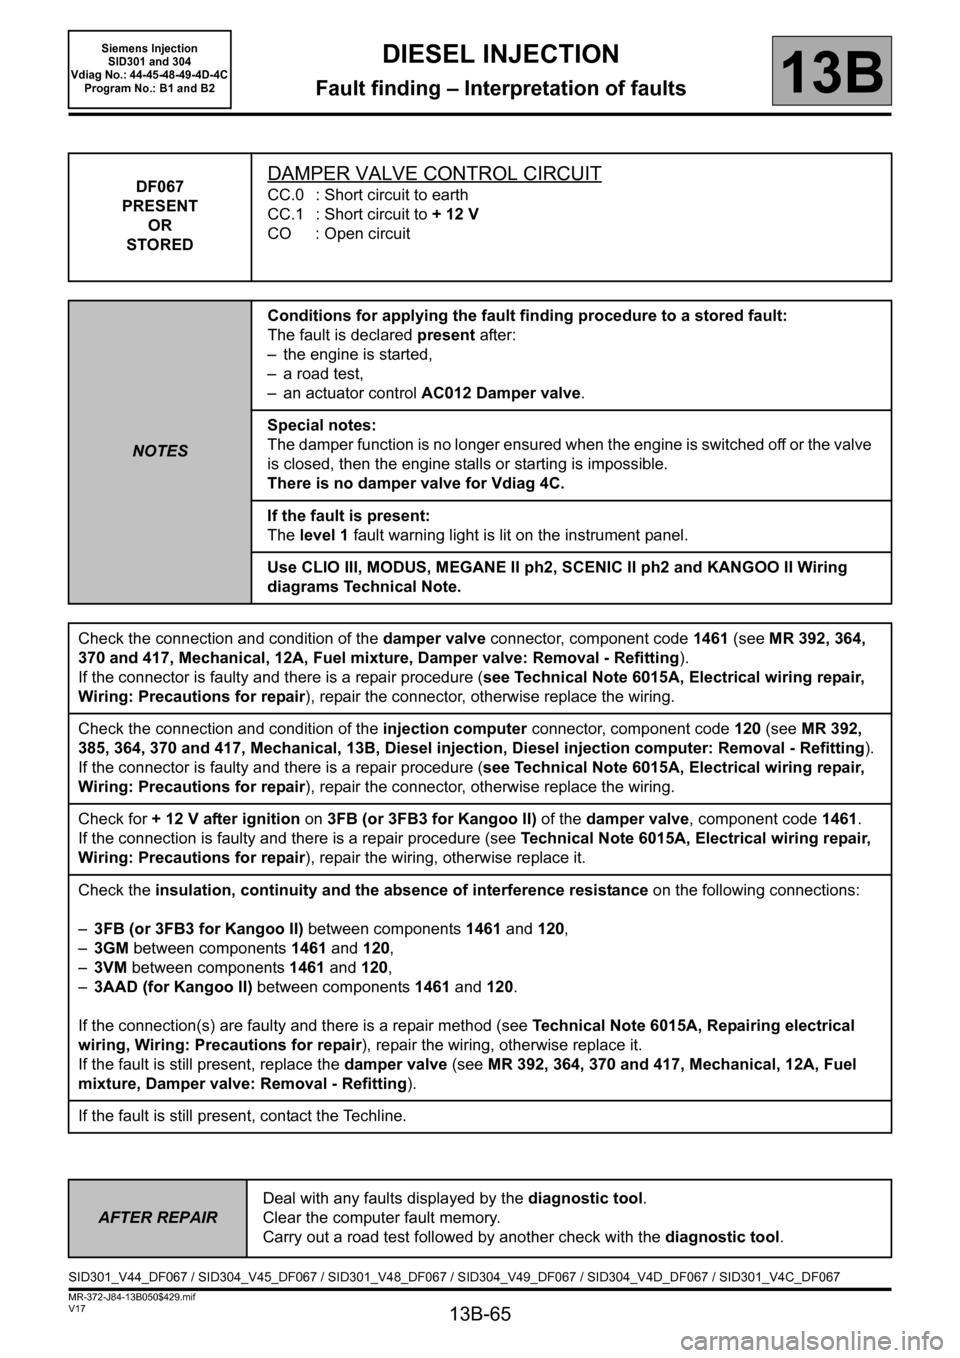 RENAULT SCENIC 2011 J95 / 3.G Engine And Peripherals Siemens Injection Workshop Manual, Page 65